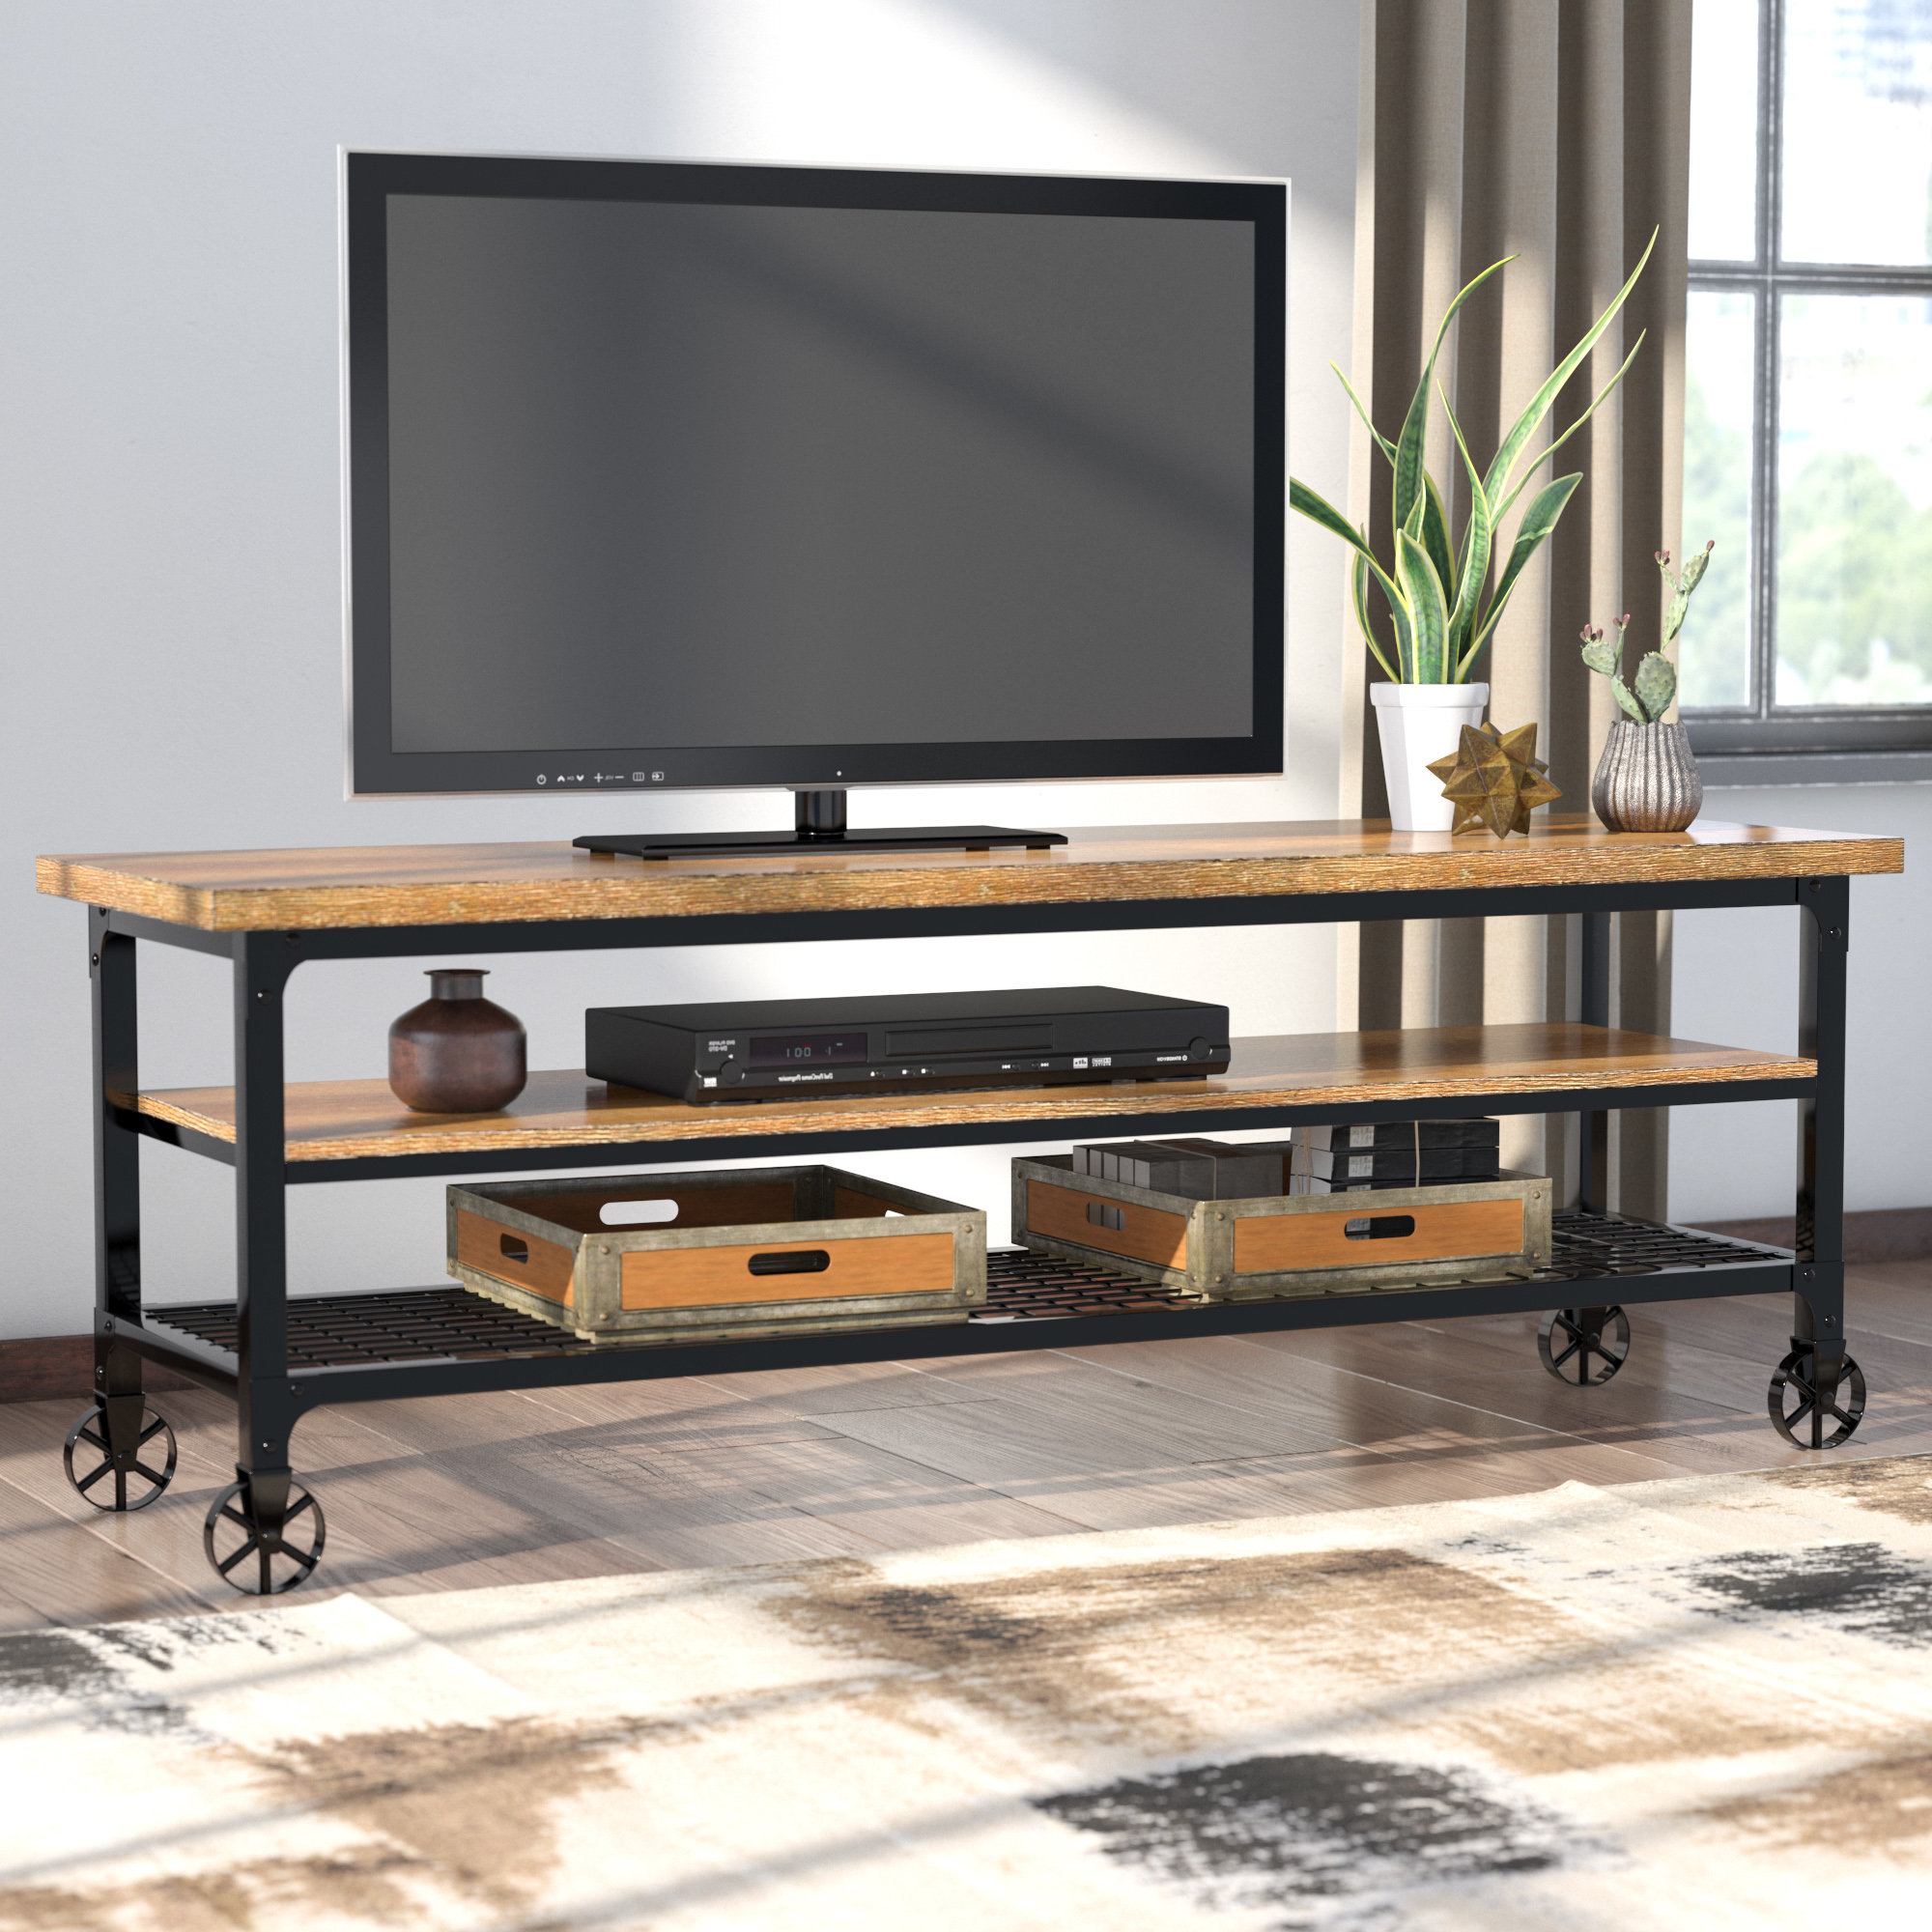 Industrial Tv Stands | Joss & Main Pertaining To Walton 74 Inch Open Tv Stands (View 7 of 20)